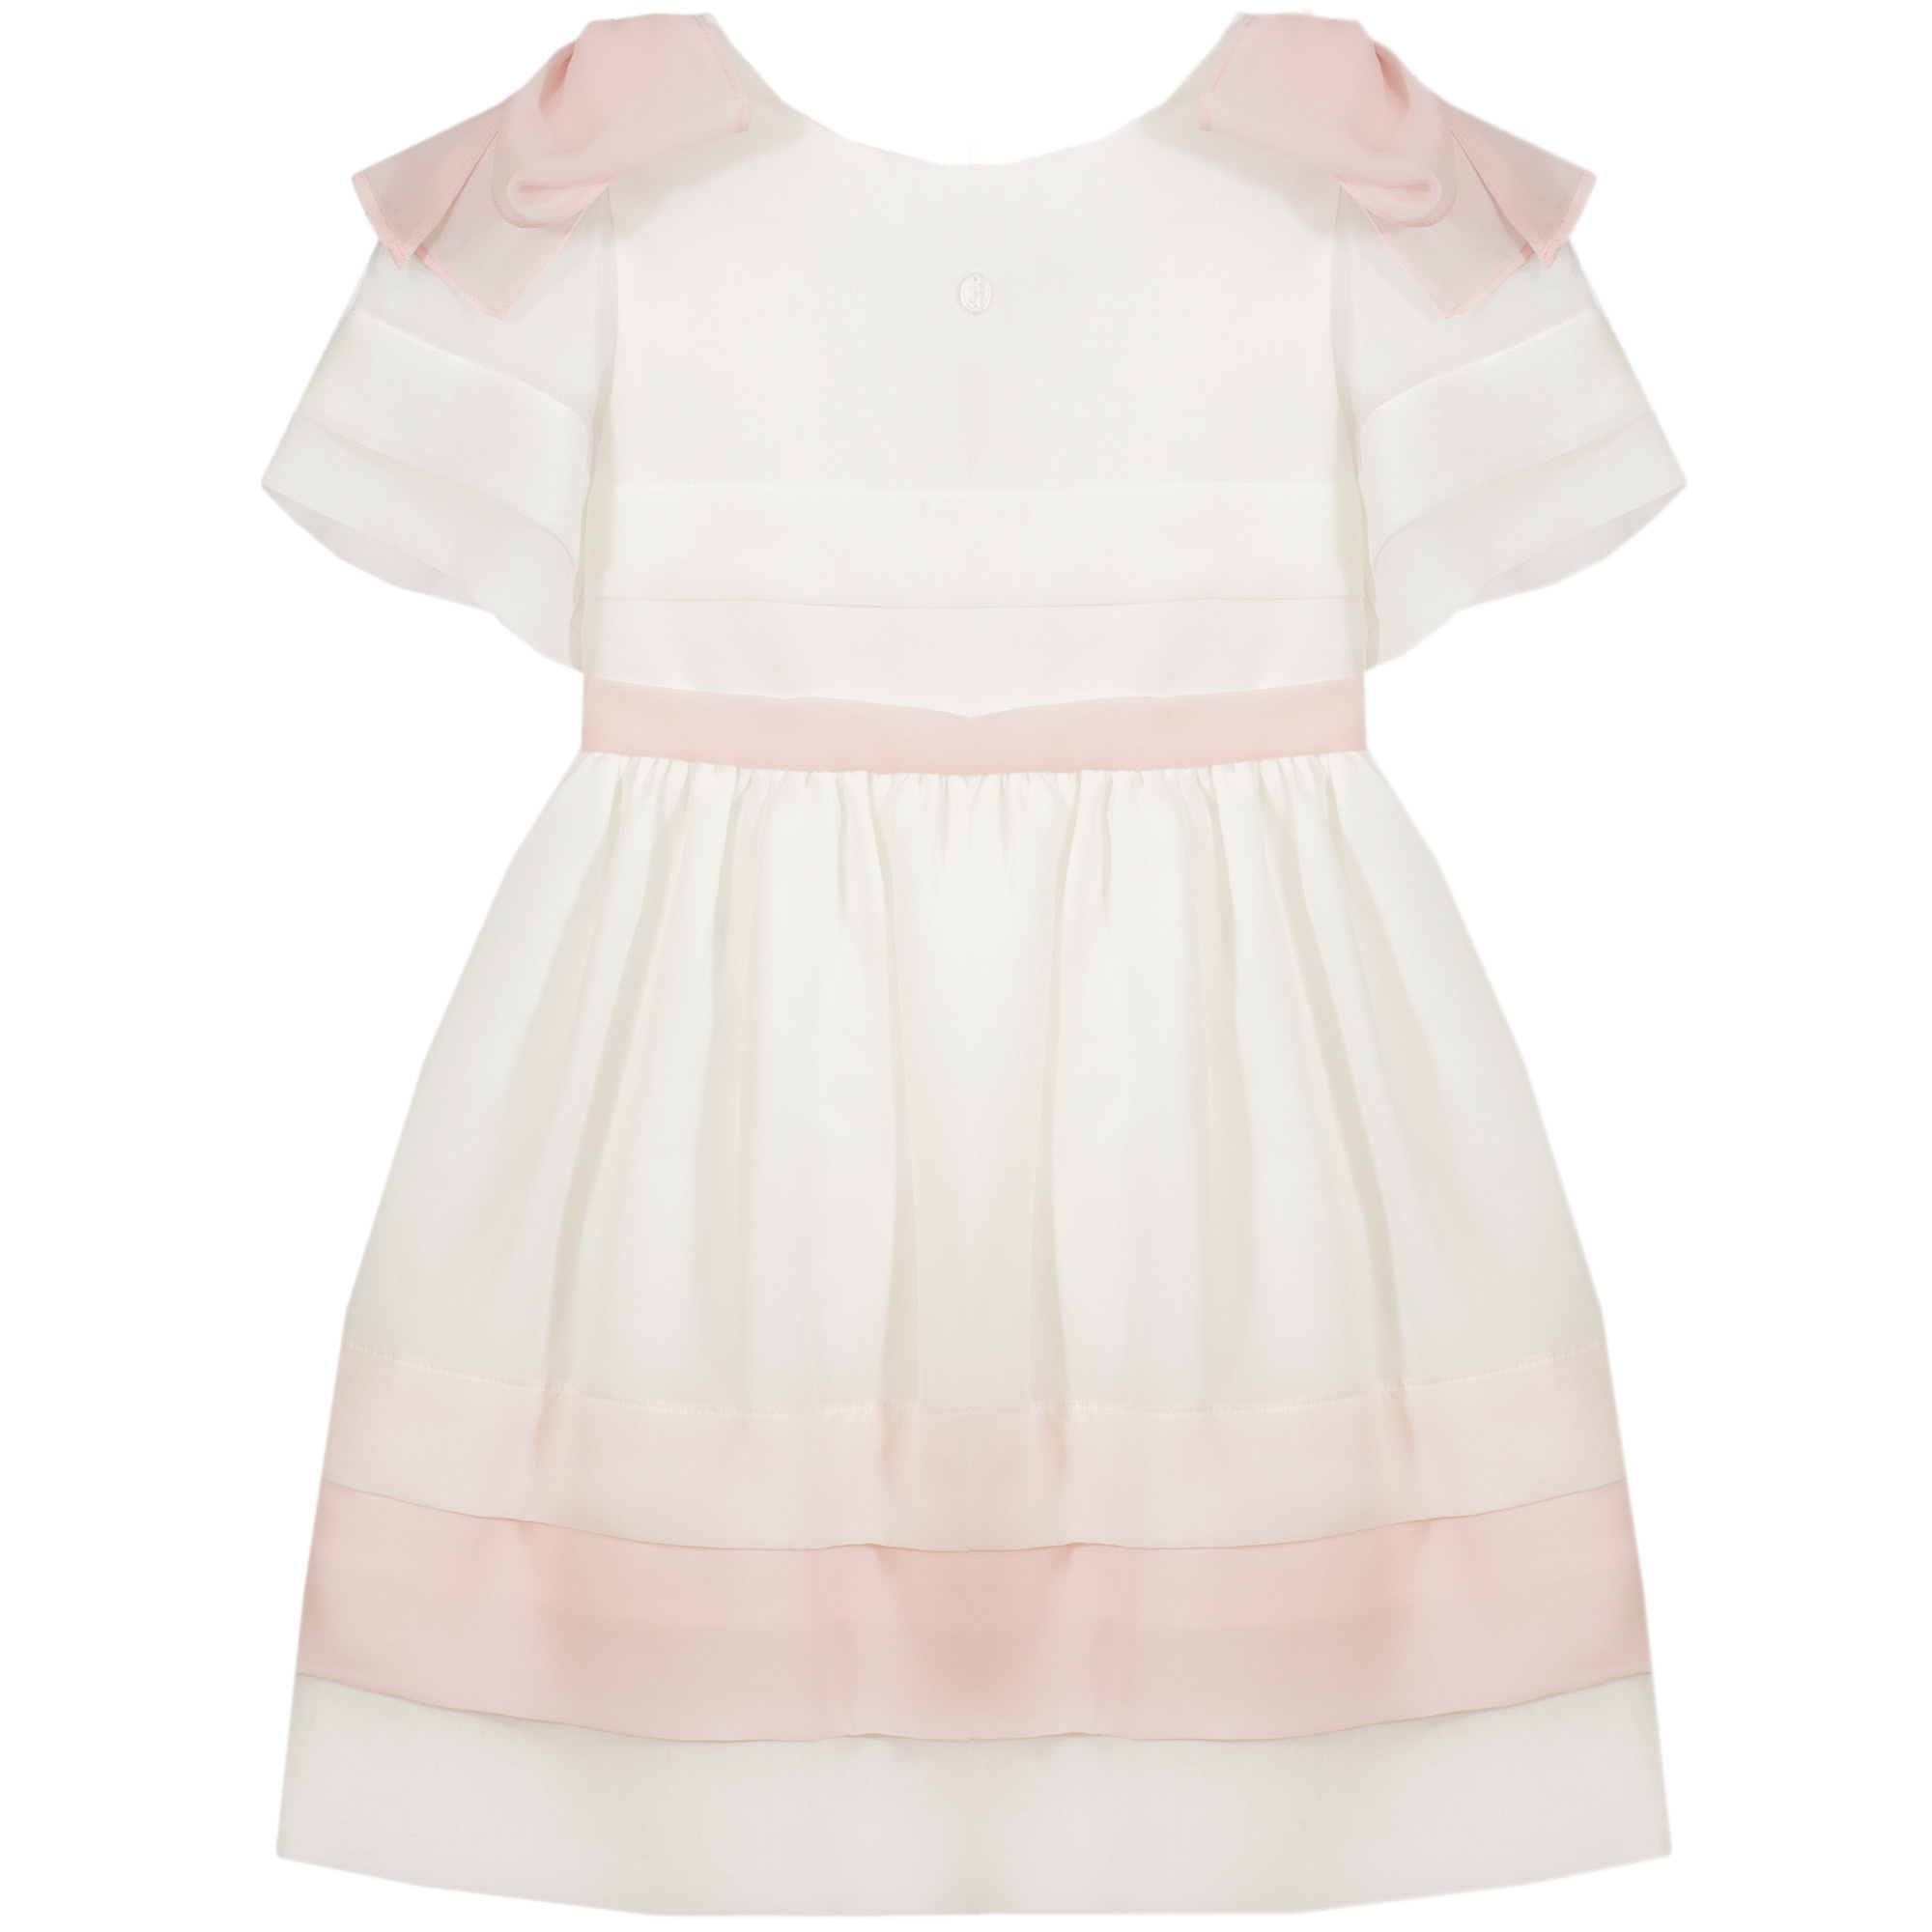 Patachou Patachou 503 White Party Dress with Pink Trim